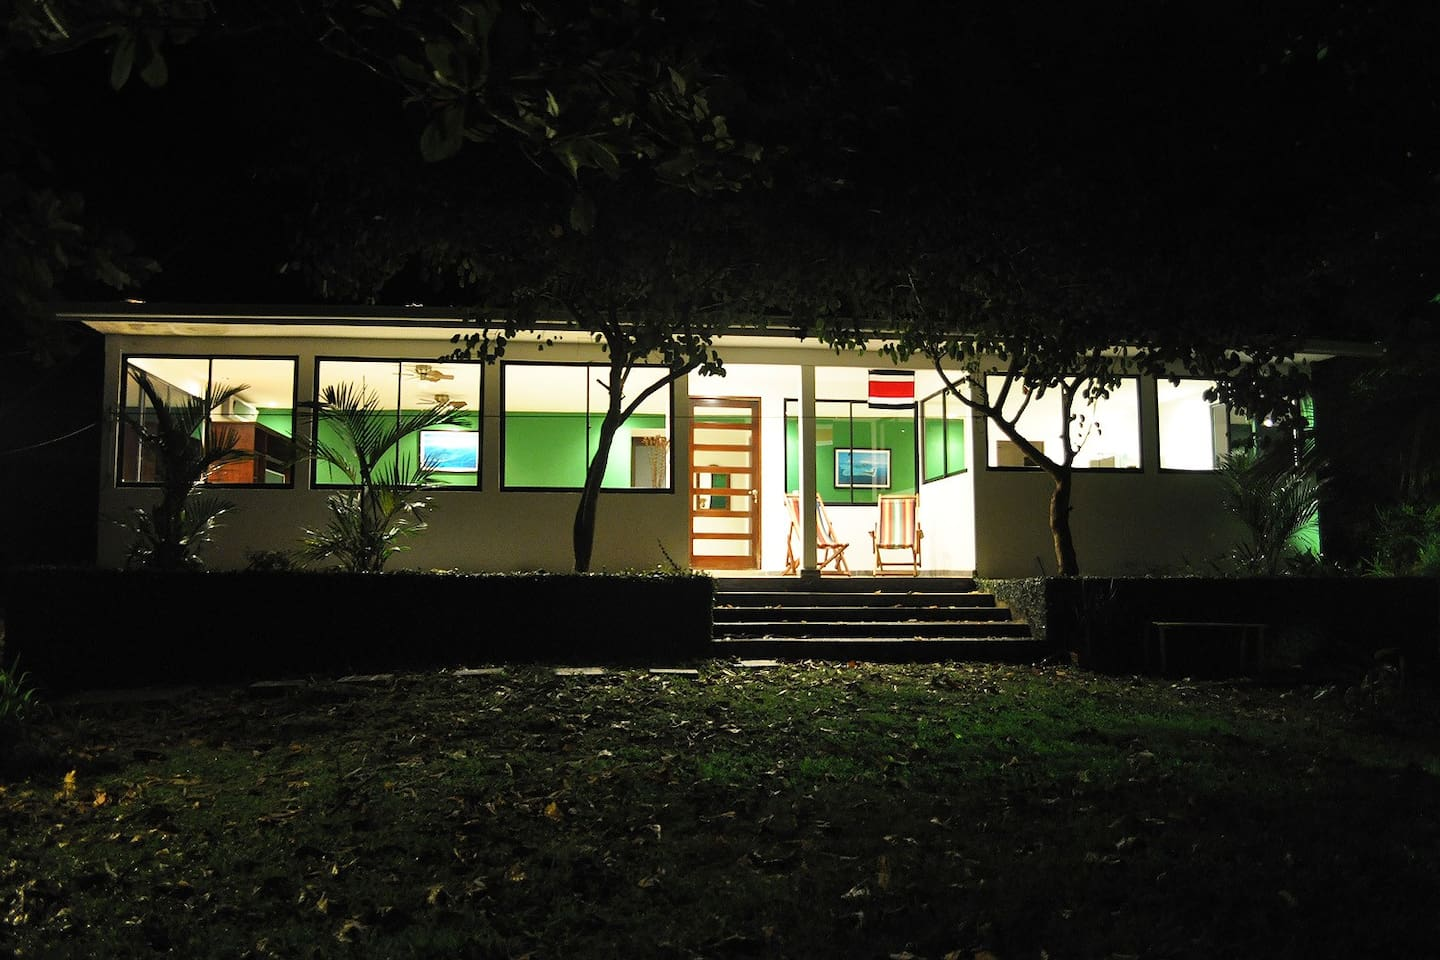 Night view of Casa Libertad